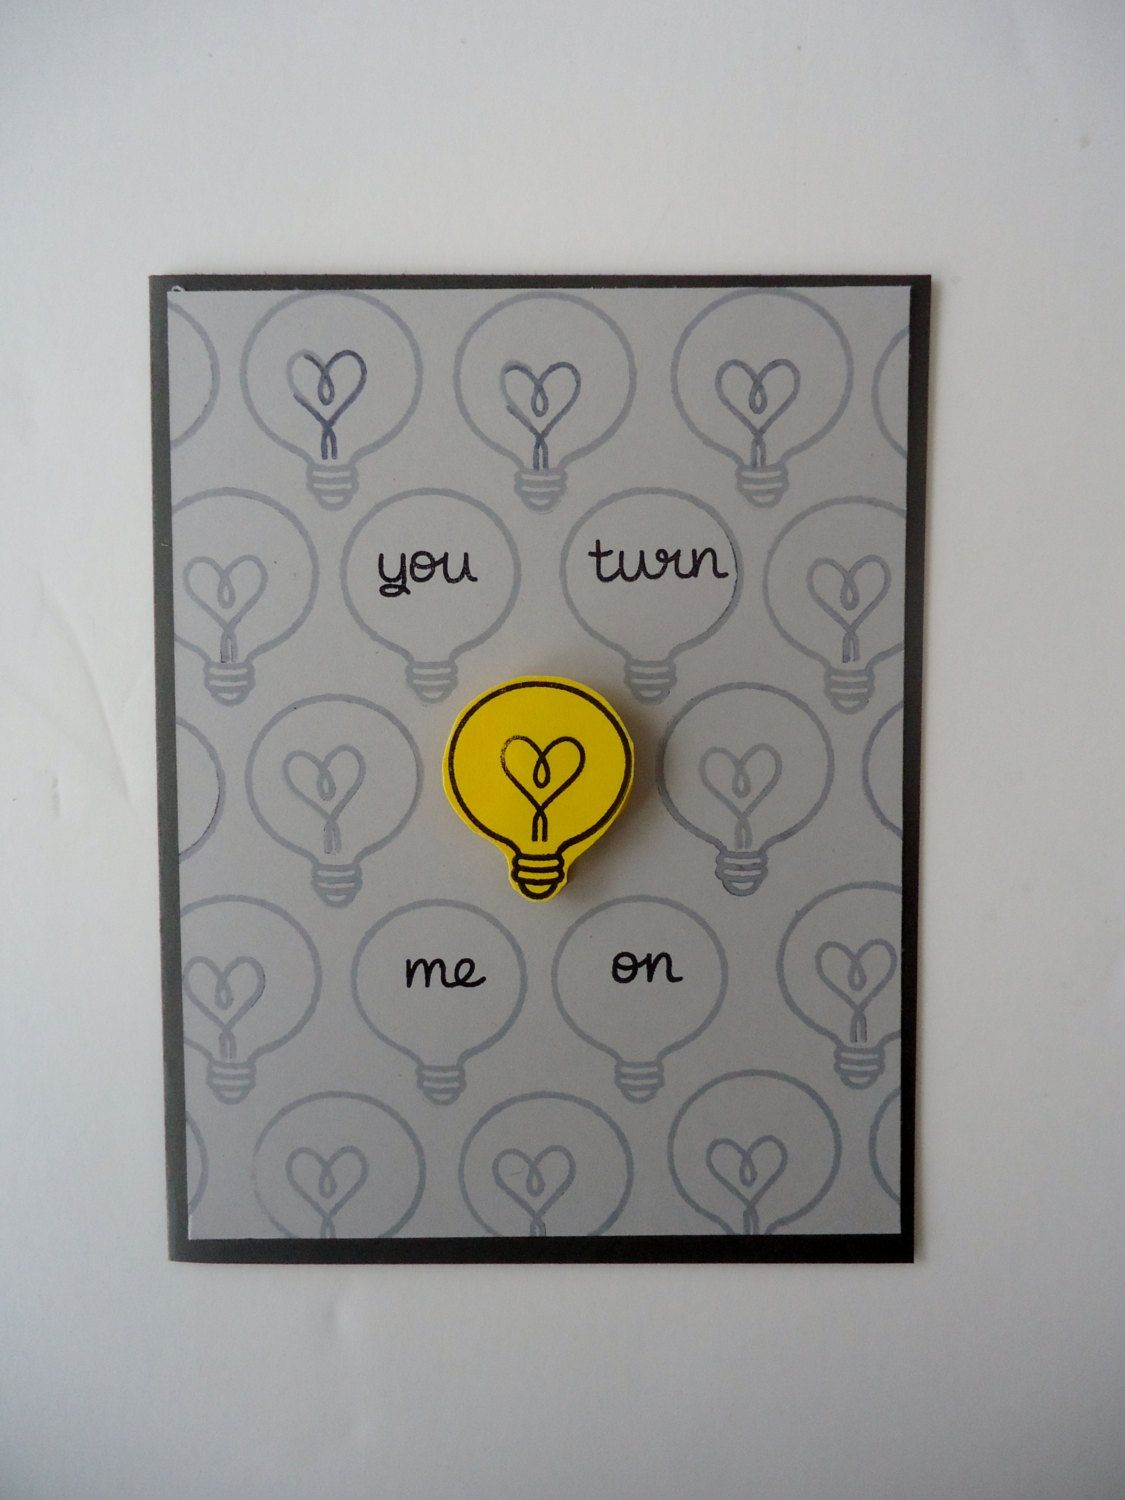 Love scrapbook ideas girlfriend - You Turn Me On Card Love Anniversary Funny And Sweet Handmade Light Bulb Heart Card For Boyfriend Girlfriend Husband Wife By Justforunotes On